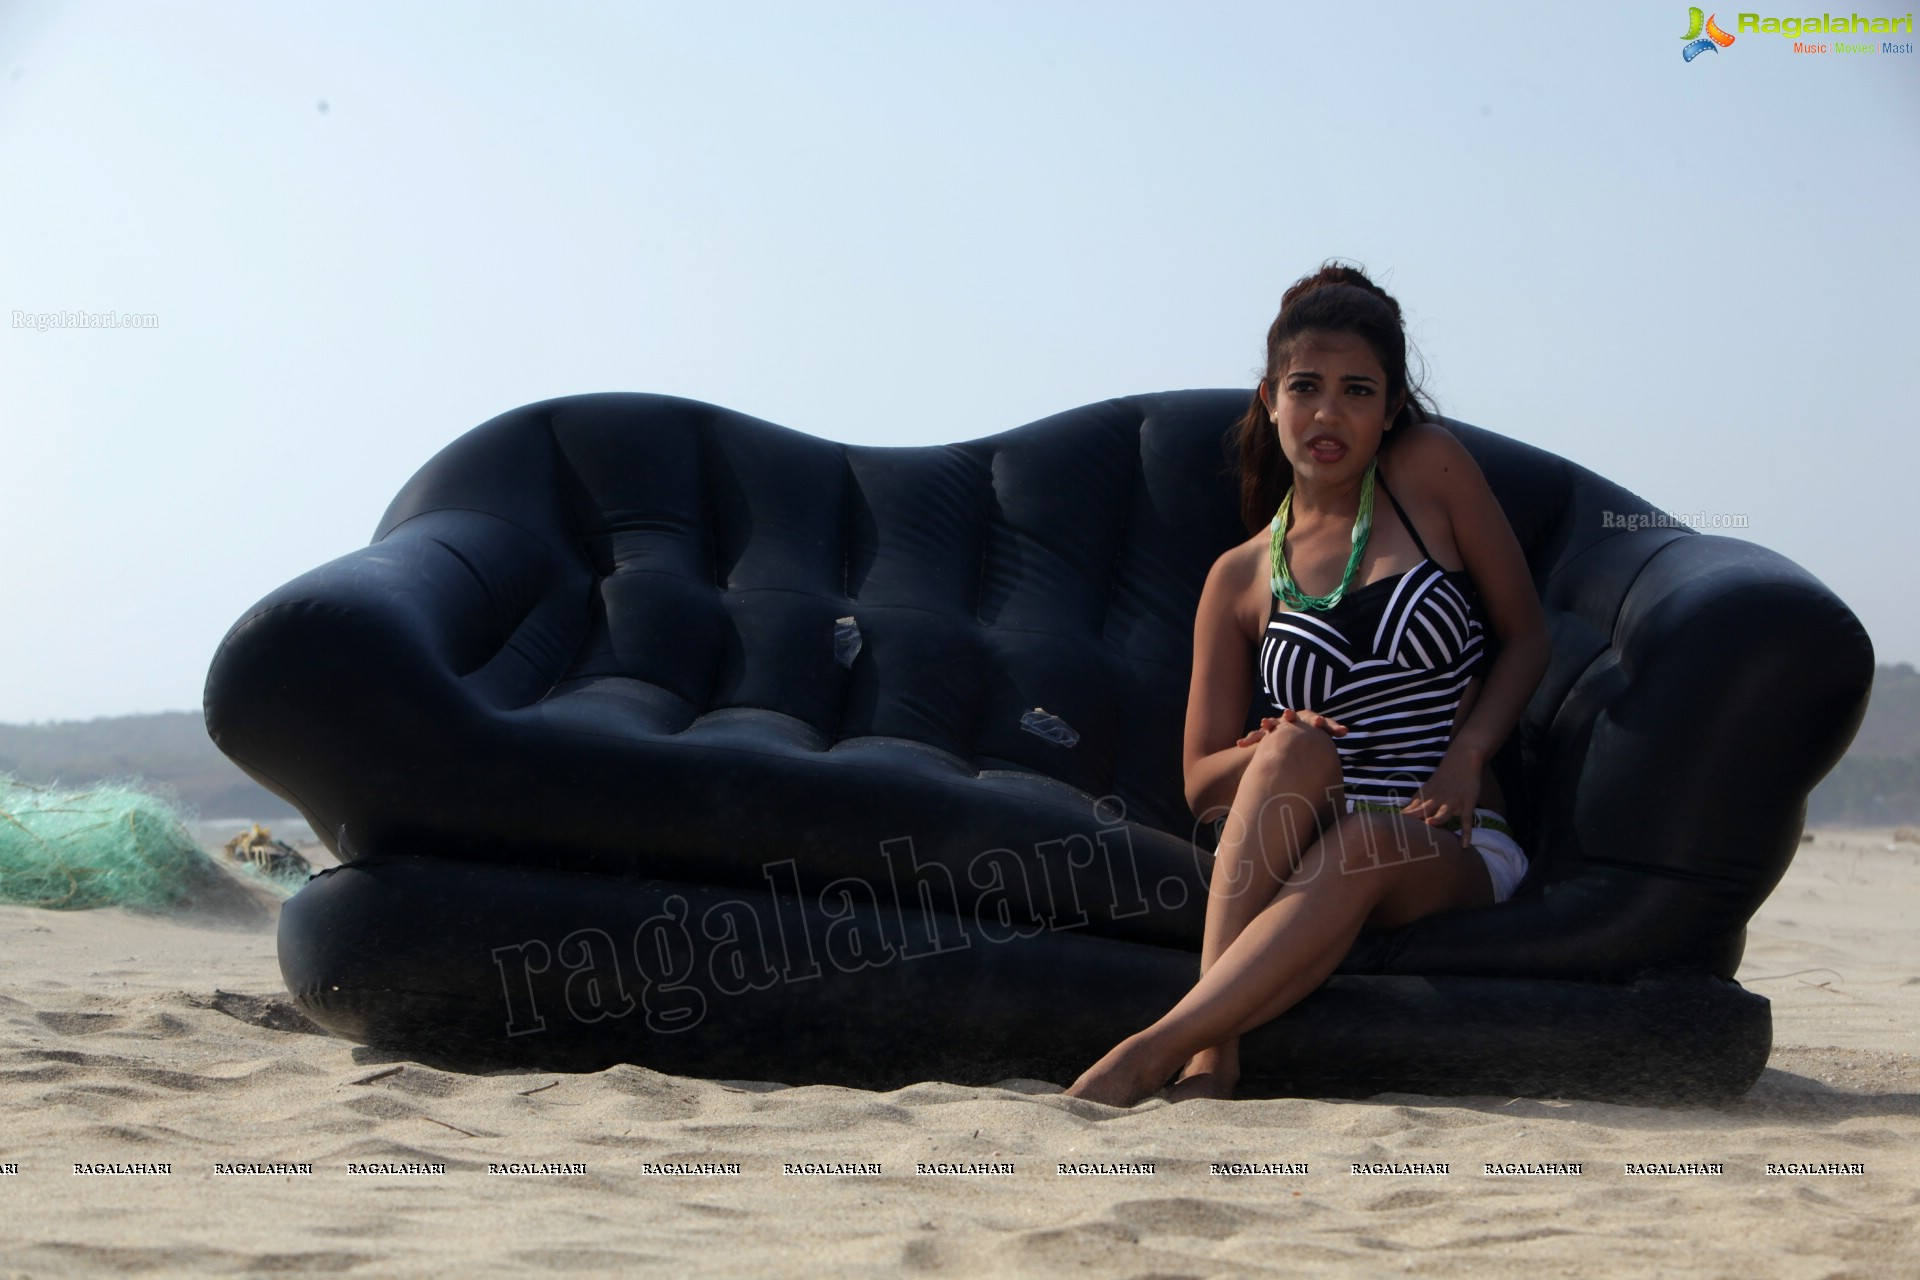 vishakhapatnam single guys Meet and date a gay man, discuss with open-minded gays around you on 1man, the gay dating site in visakhapatnam, andhra pradesh.